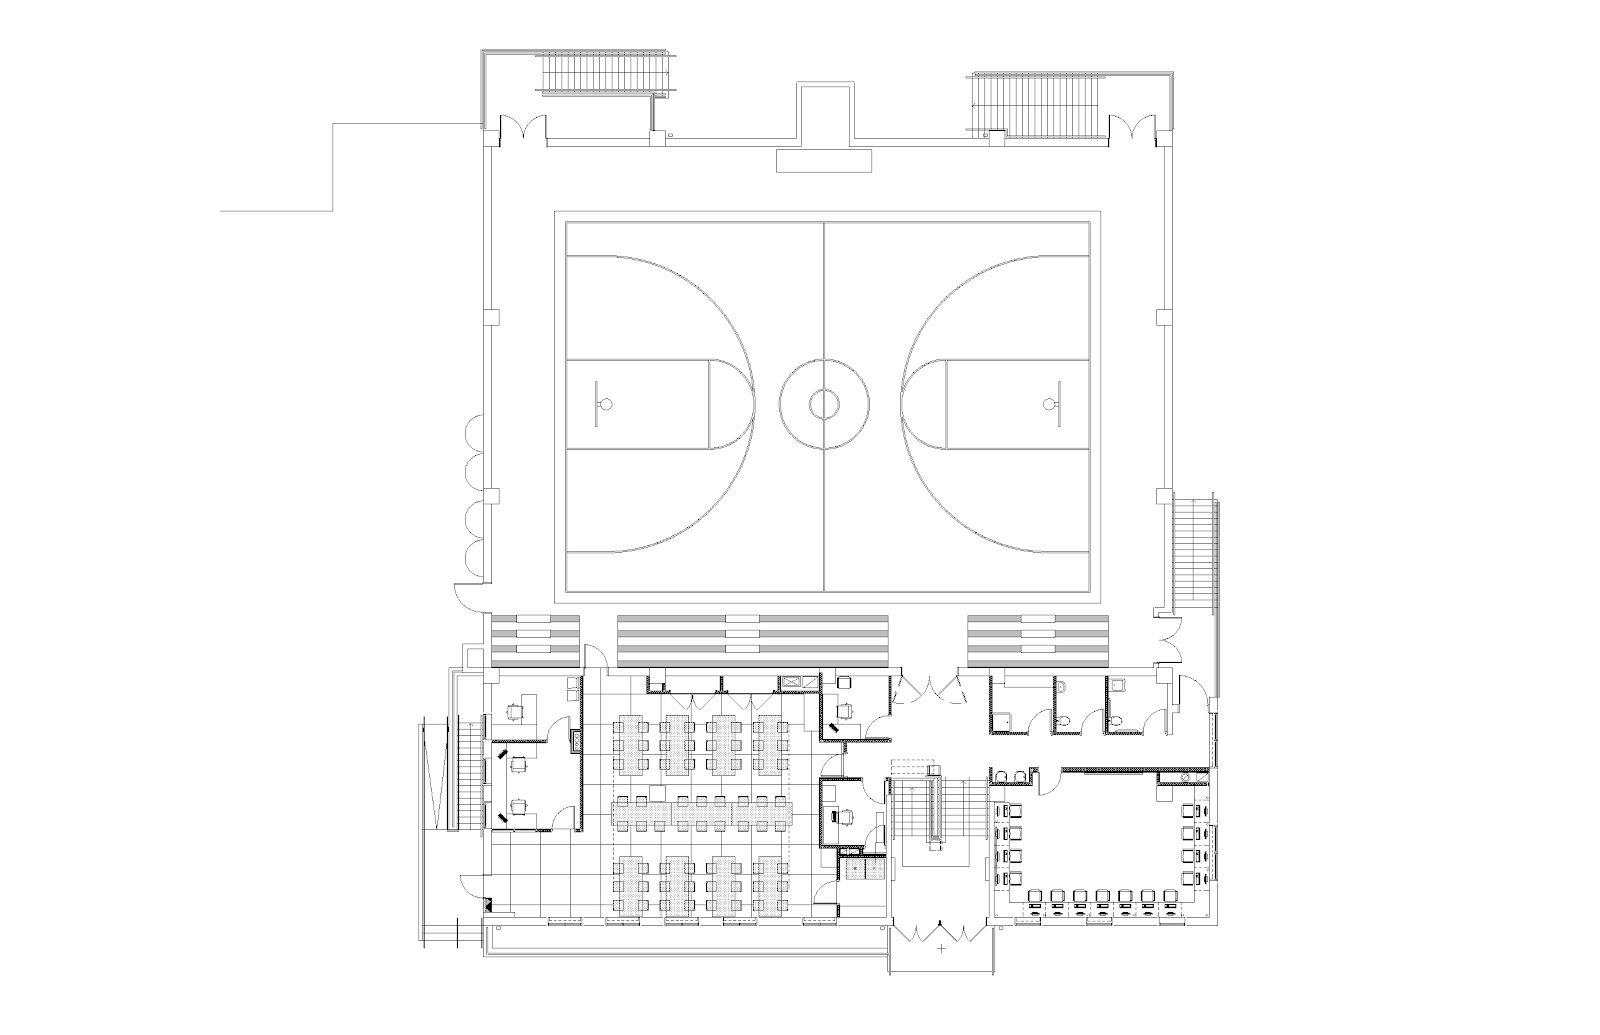 The siena school 39 s new building update first look at for Multi purpose building plans